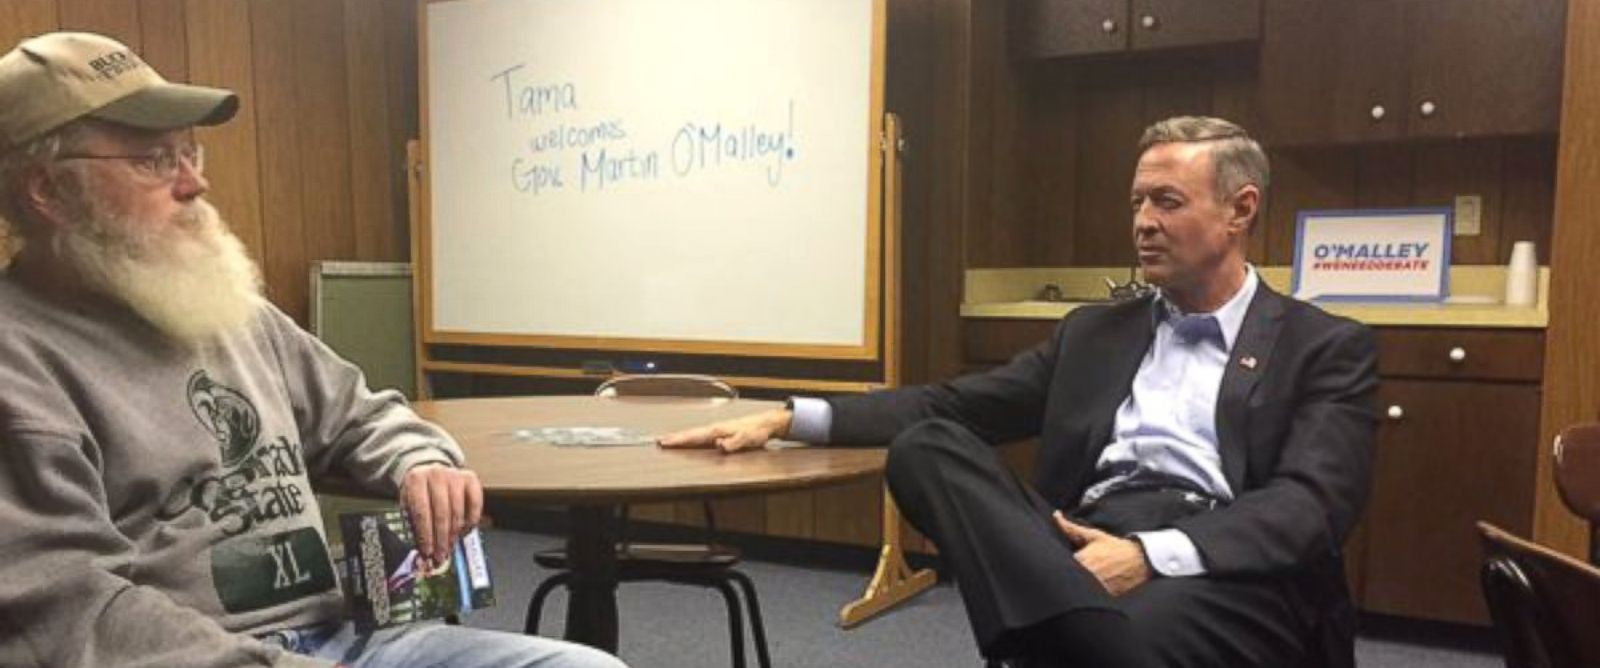 PHOTO: Despite a snowstorm in Iowa, Democratic presidential candidate Martin OMalley held an event where only one attendee showed up.